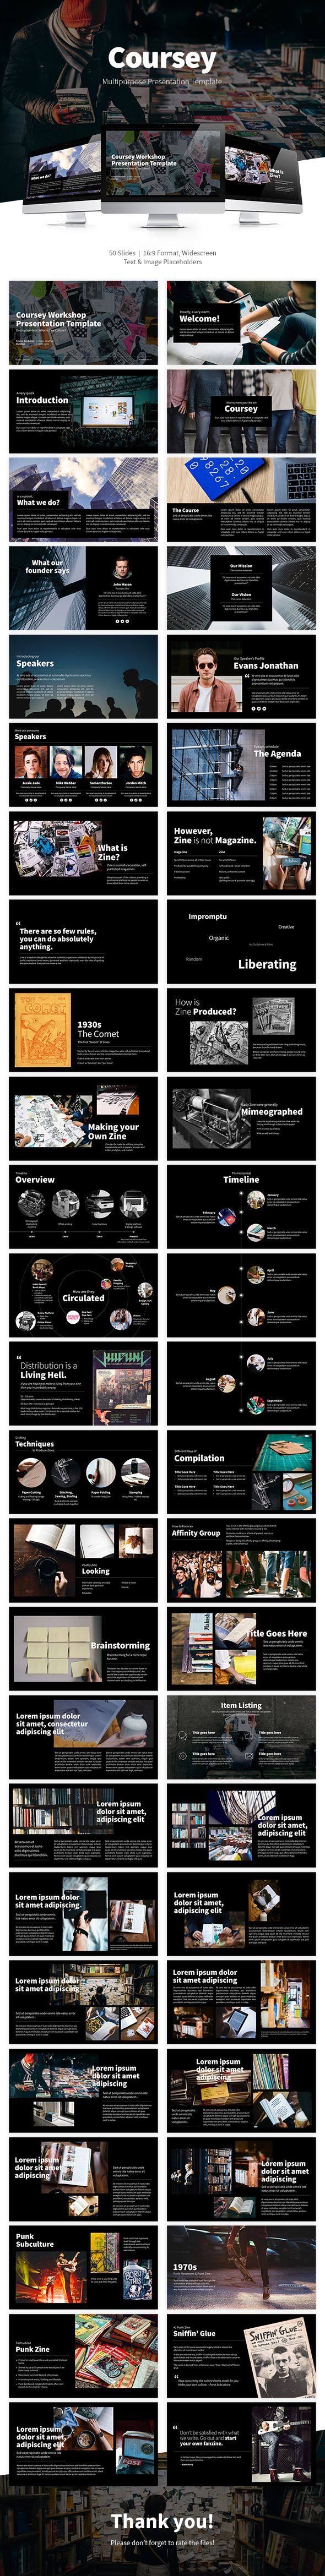 Coursey #Multipurpose #Powerpoint Presentation Slide - PowerPoint Templates #Presentation Templates